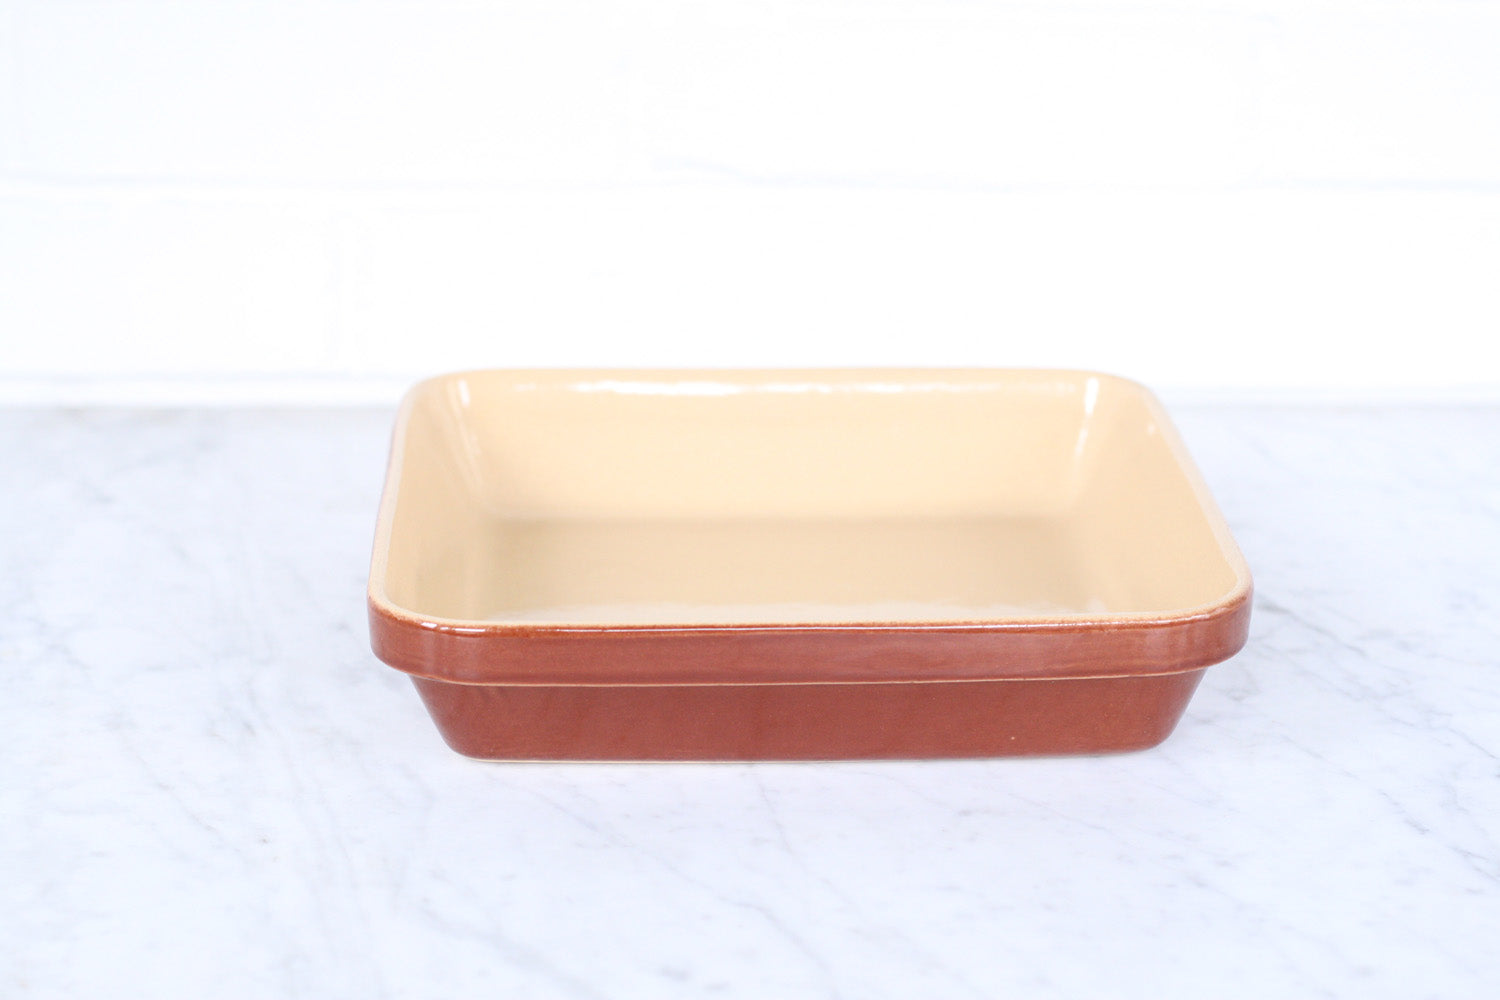 Poterie Renault Stoneware Square Baking Dish